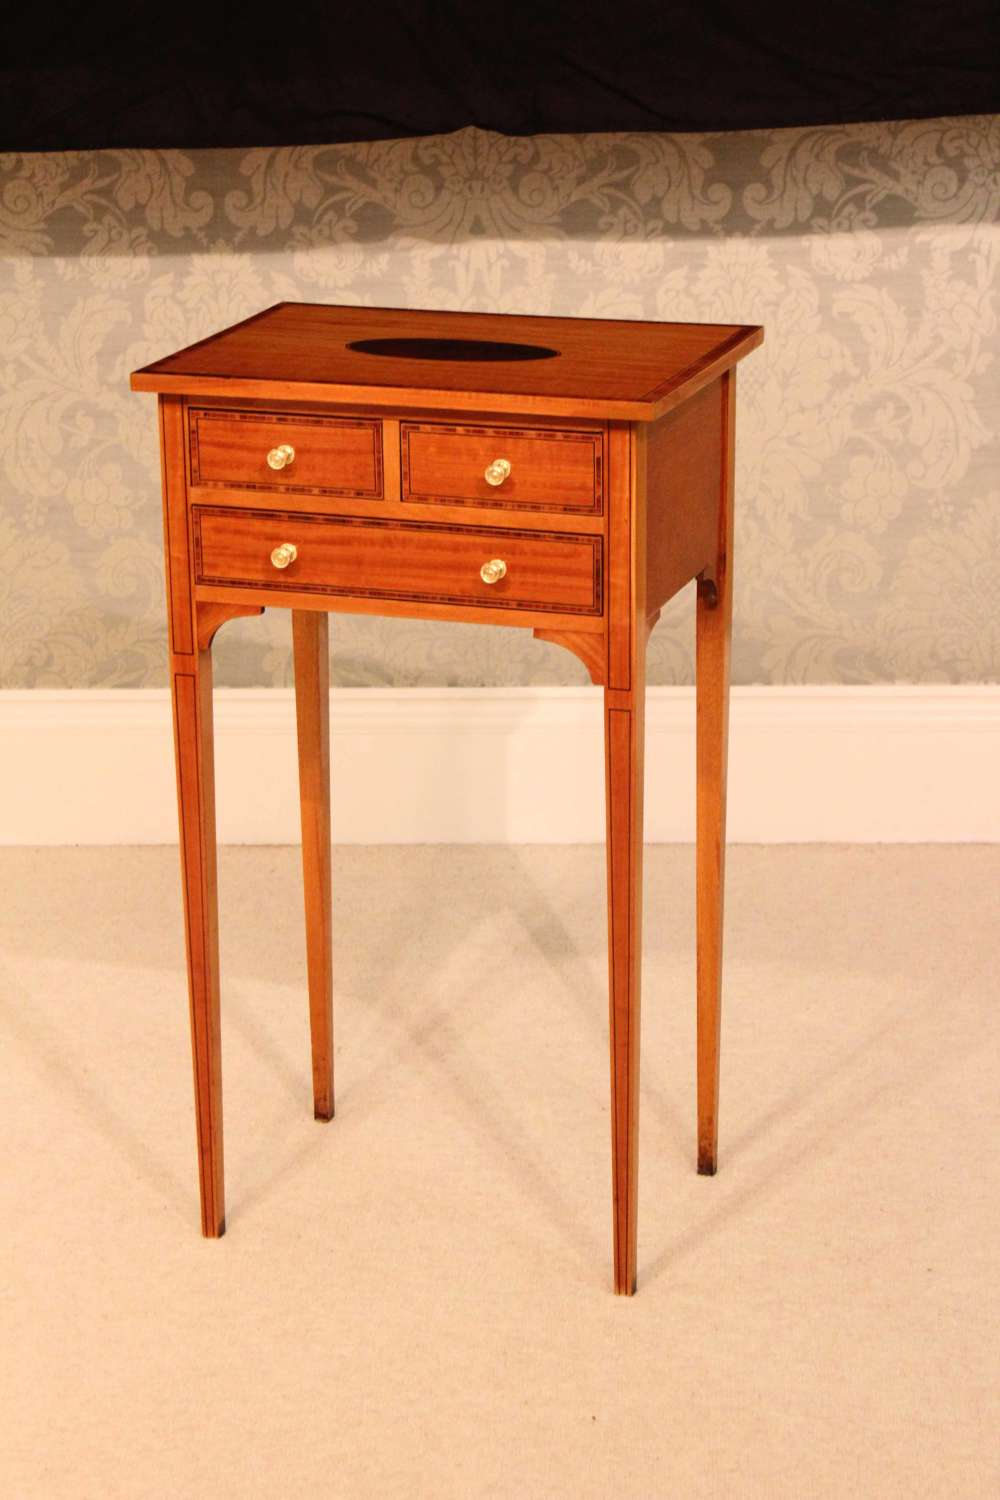 The Quality Edwardian Satinwood Inlaid Side Table.